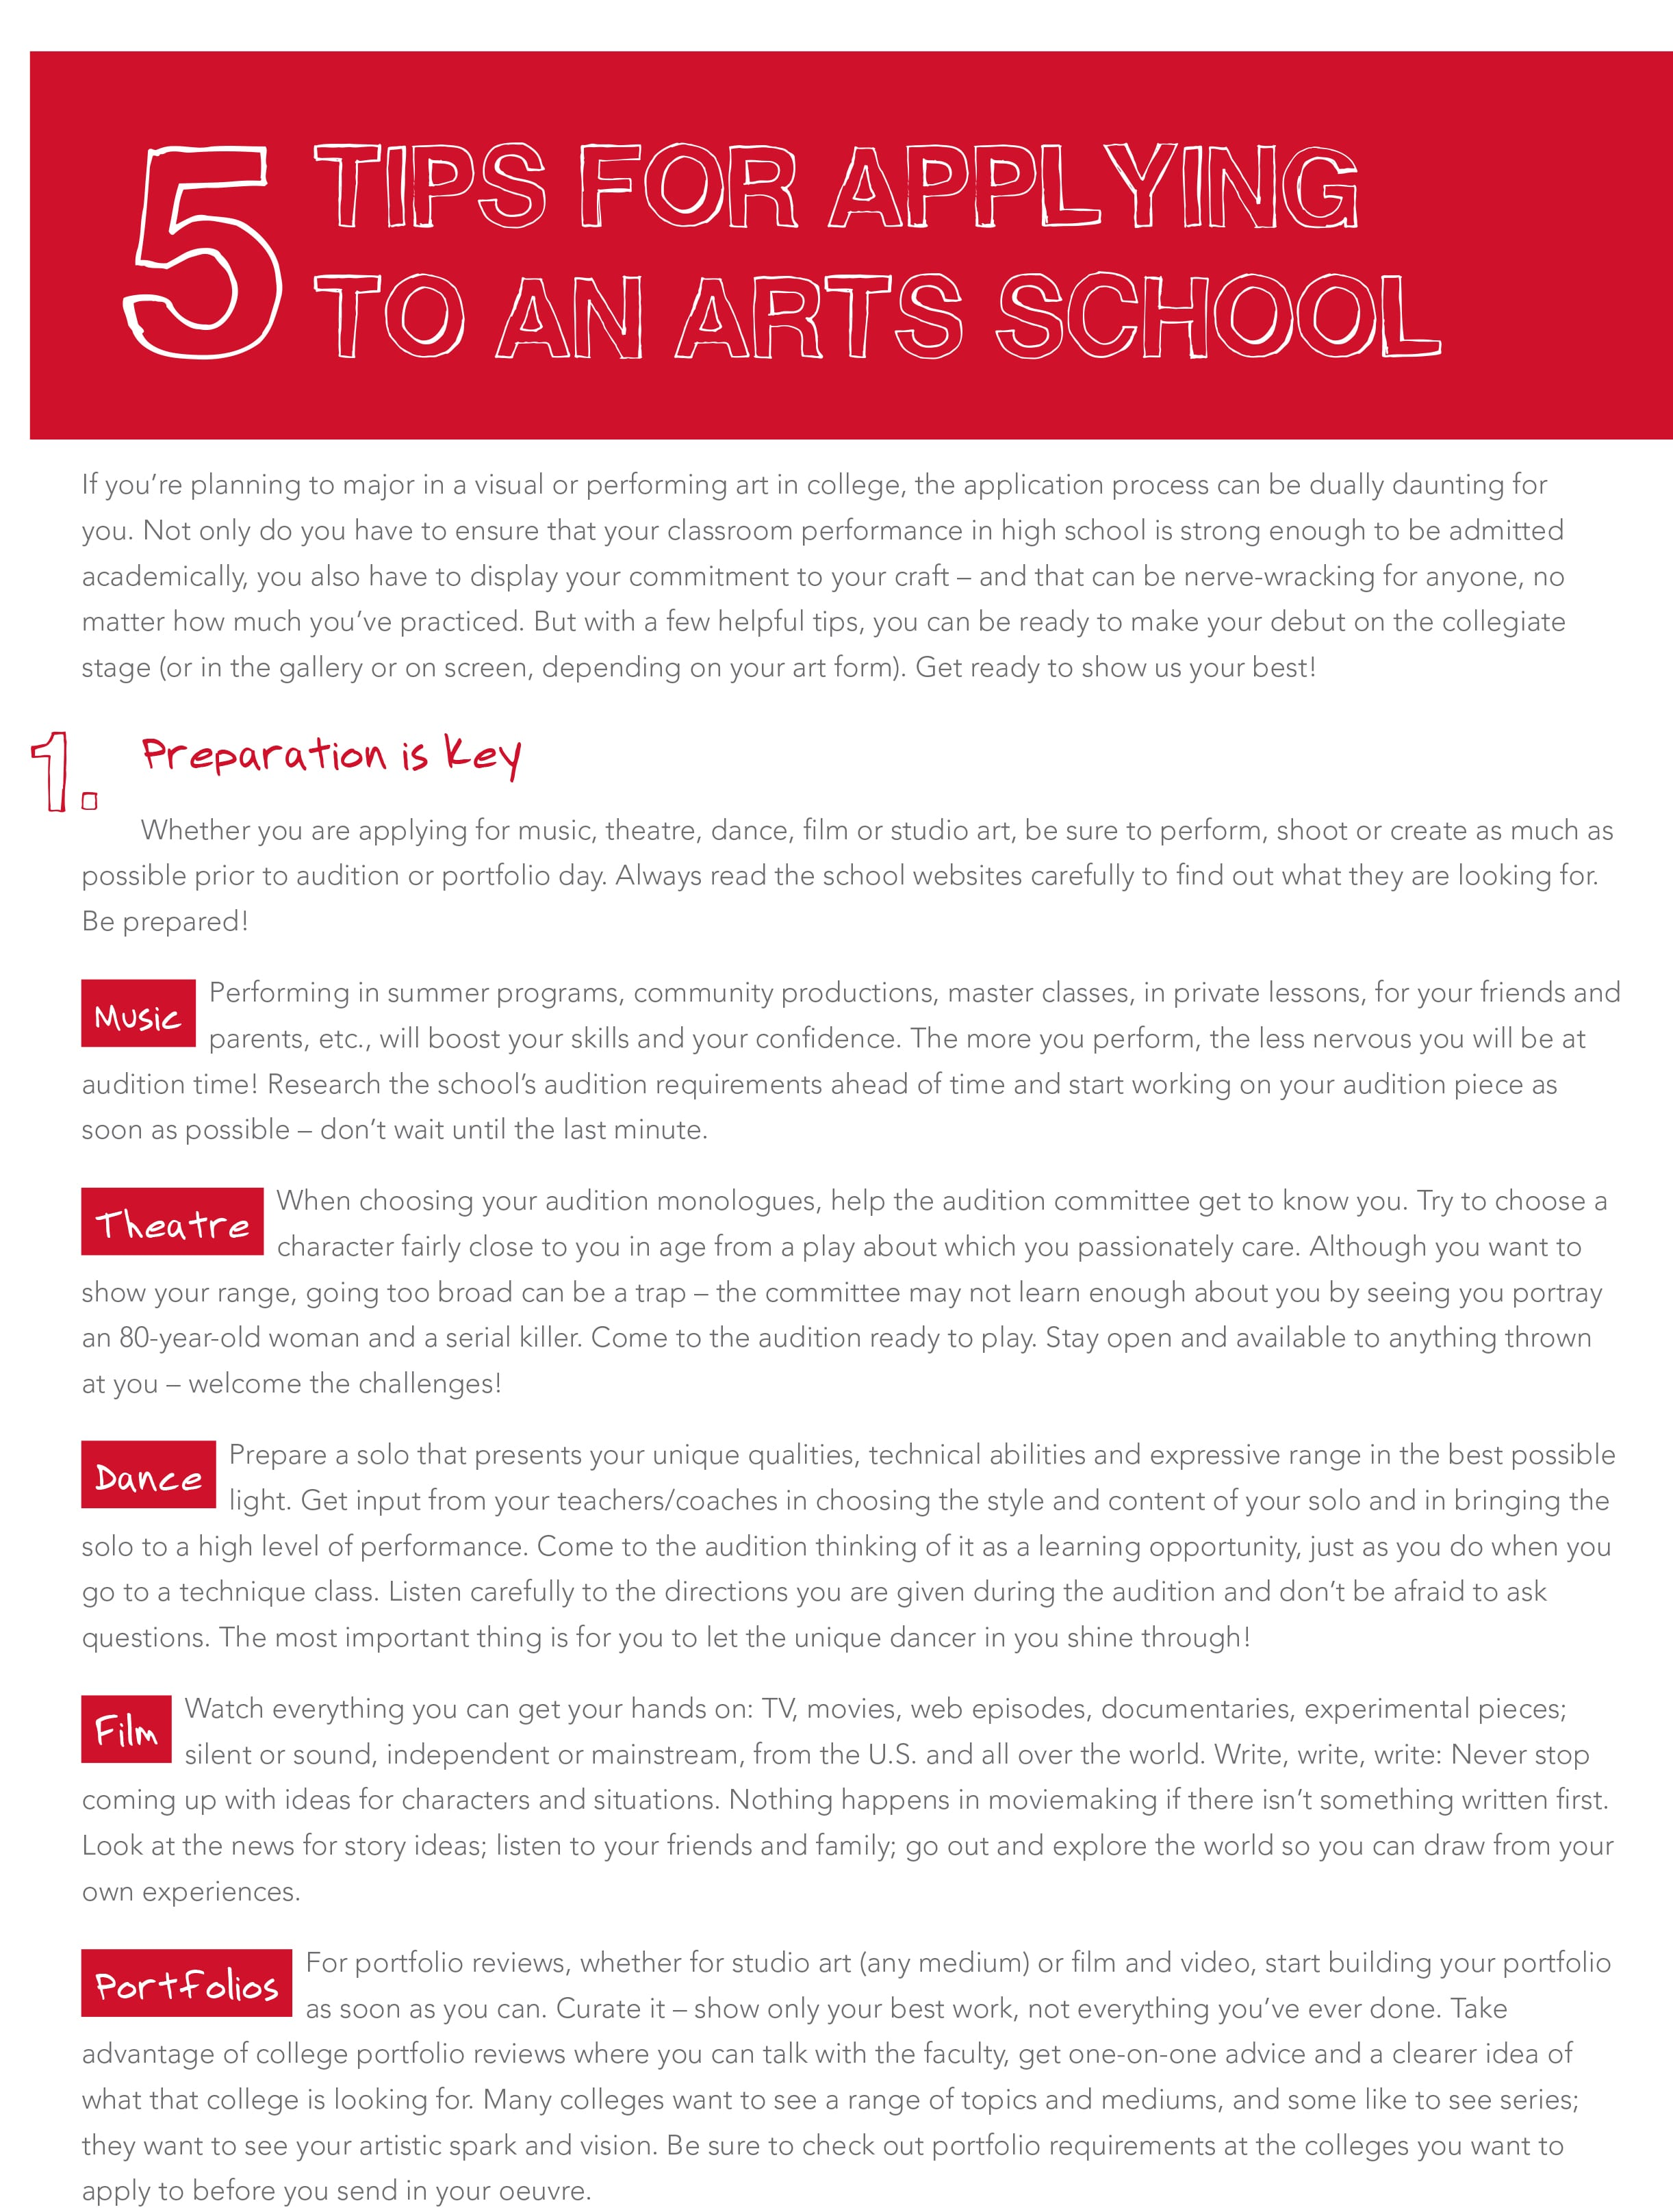 Infographic: Five Tips for Applying to Arts School – SMU Meadows